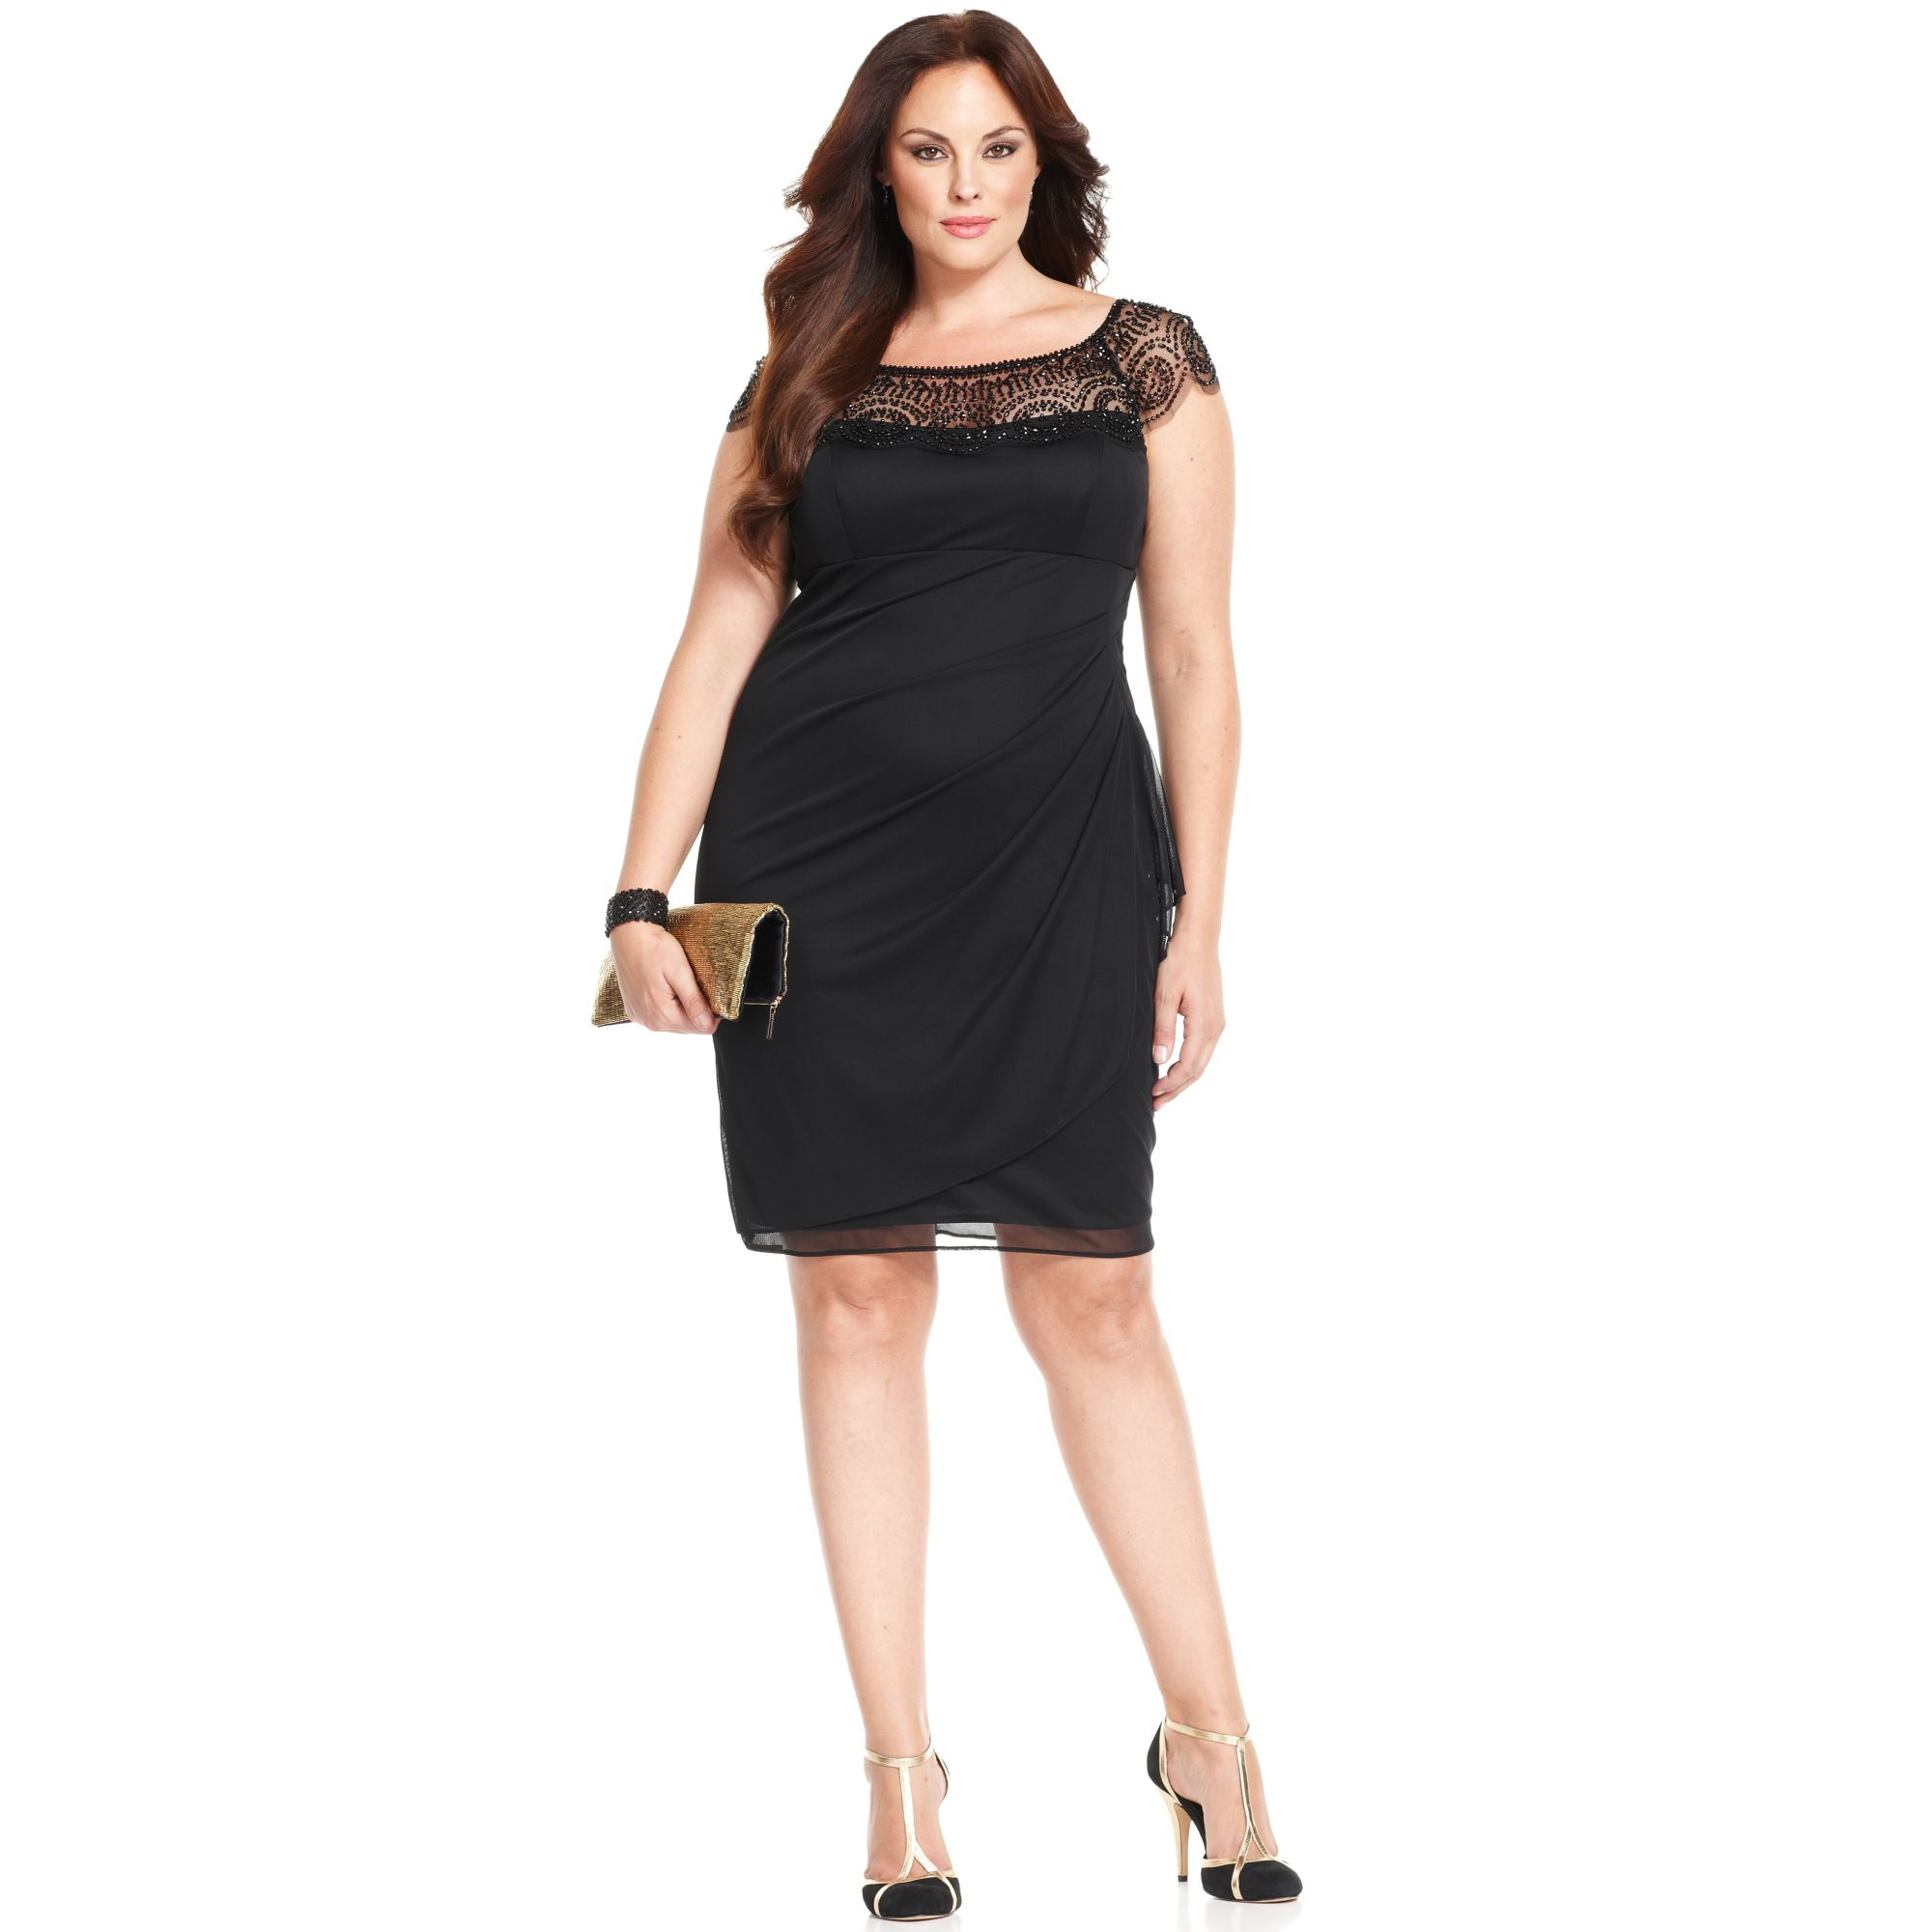 plus size dresses rochester the big apple